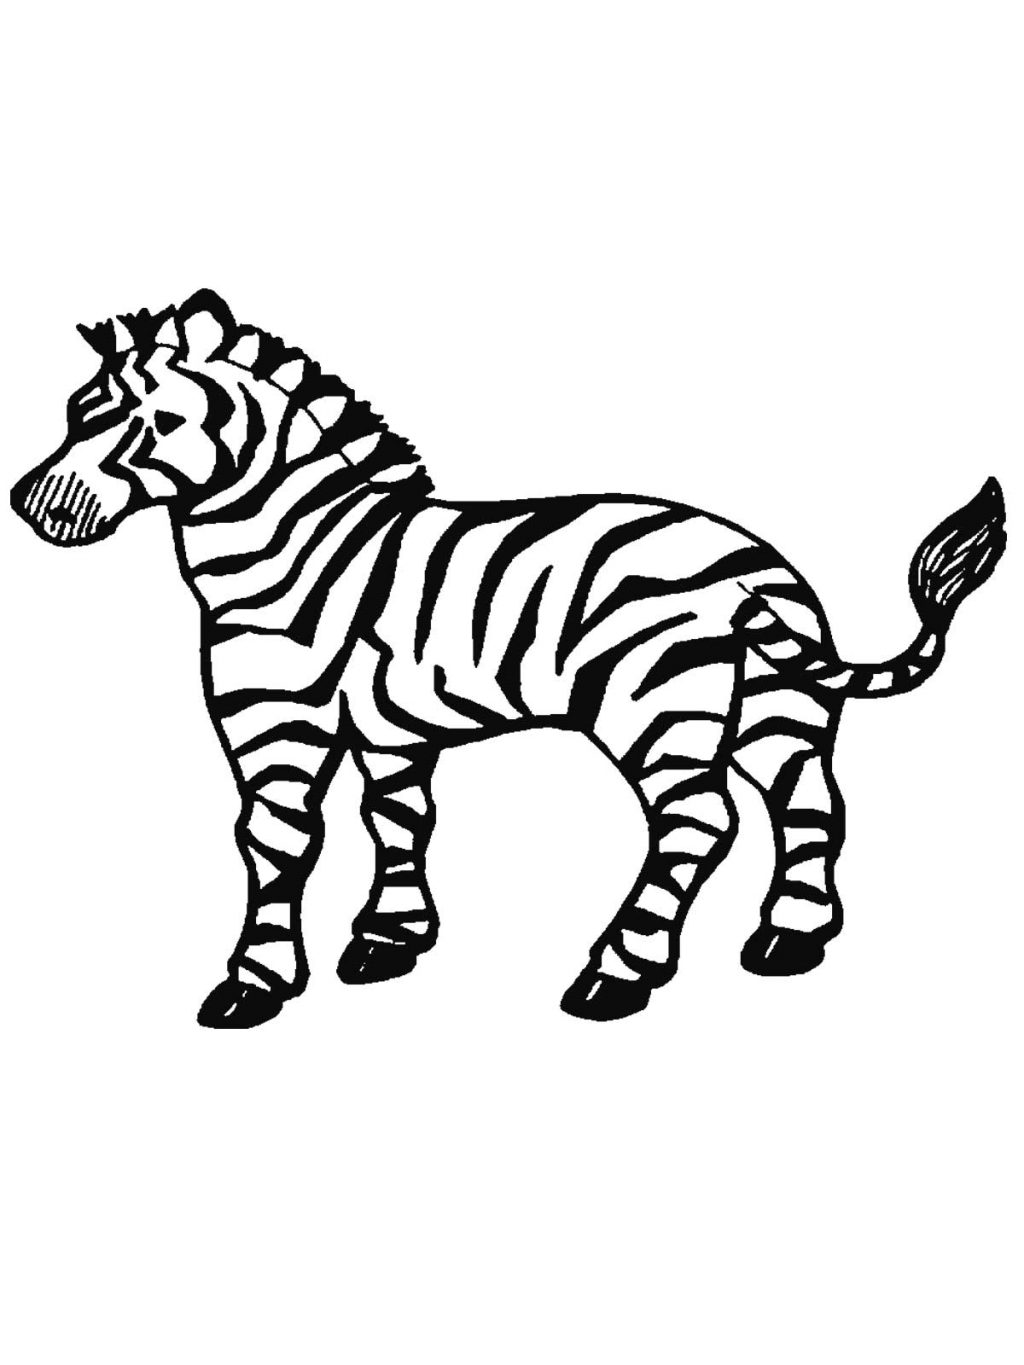 Cartoon Zebra Coloring Pages At GetDrawings